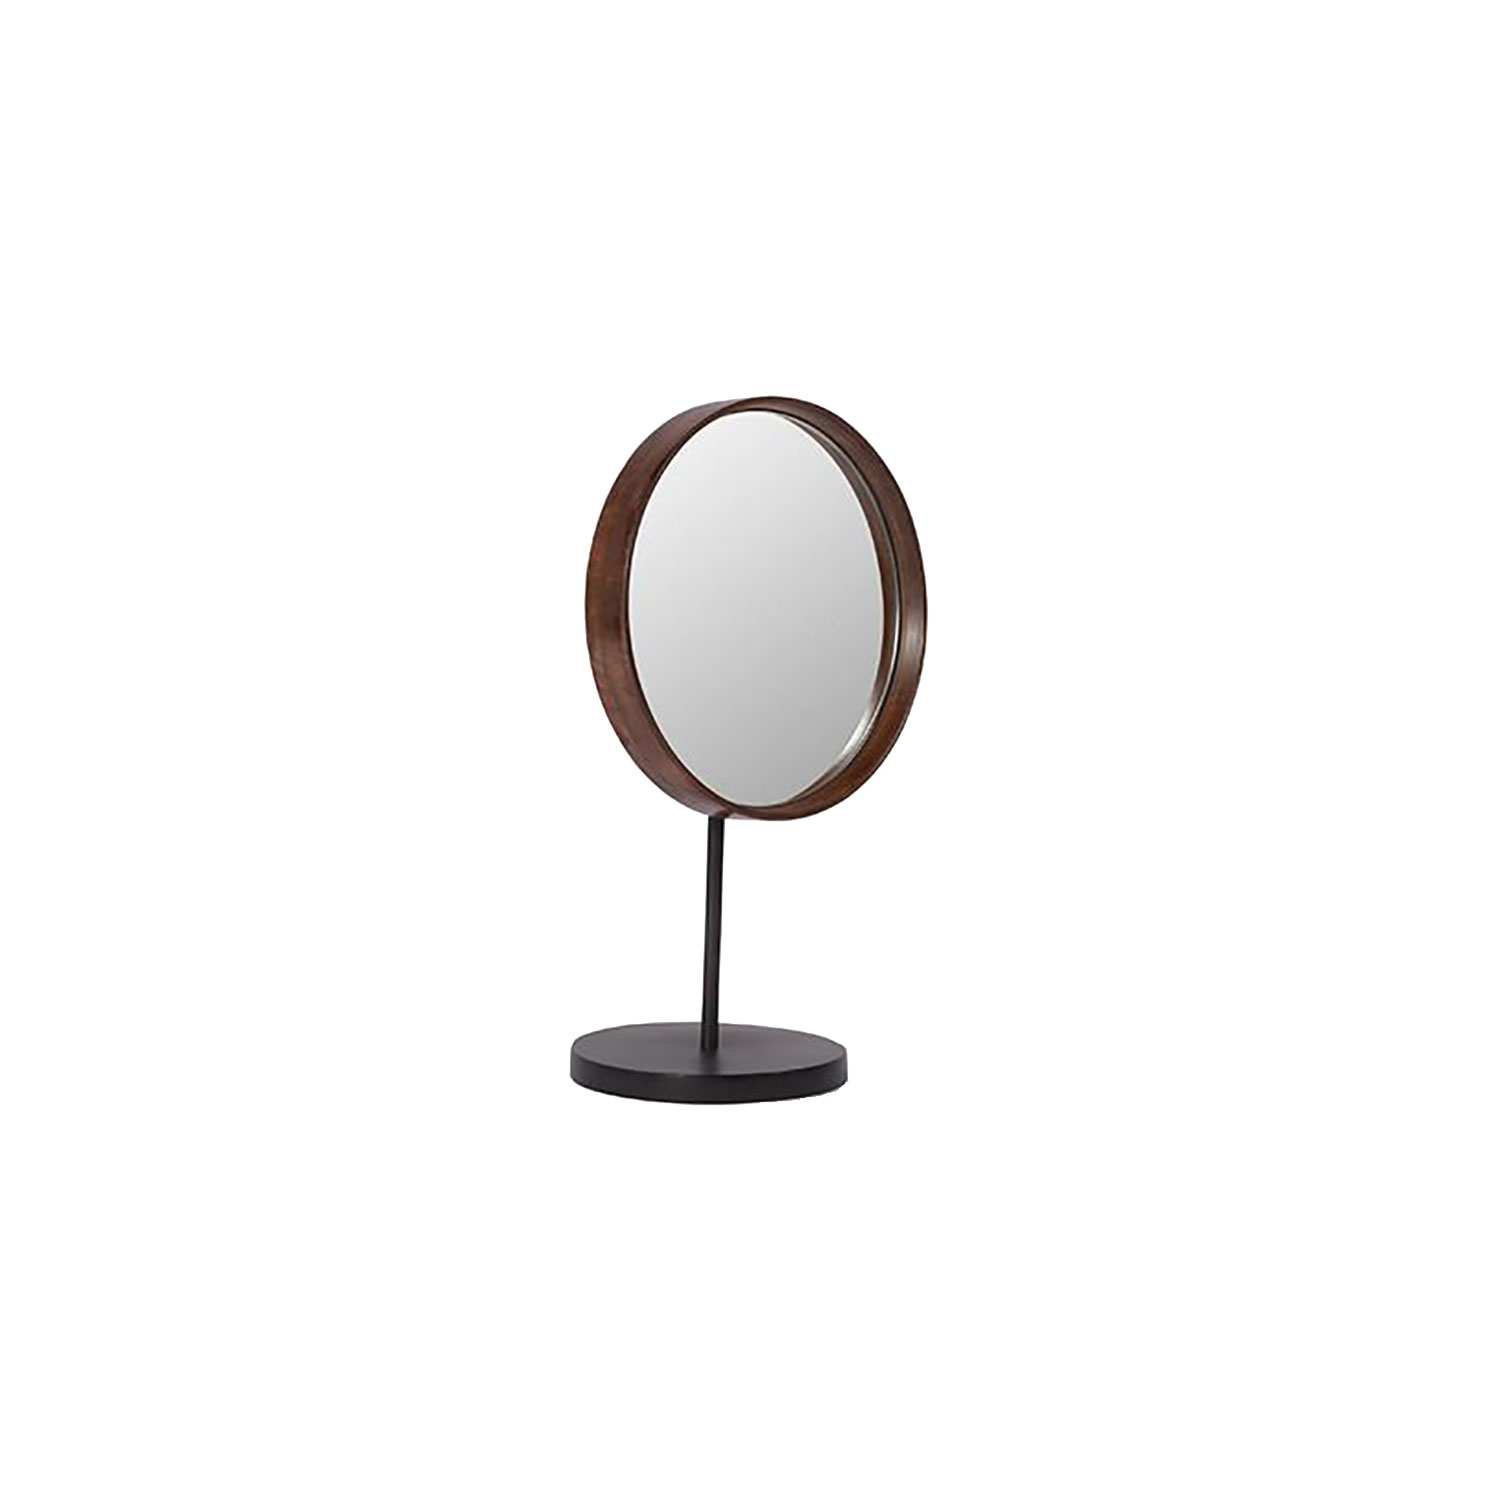 Bilde av 101 Copenhagen-Reflect Table Mirror 30 Cm, Tre/Messing